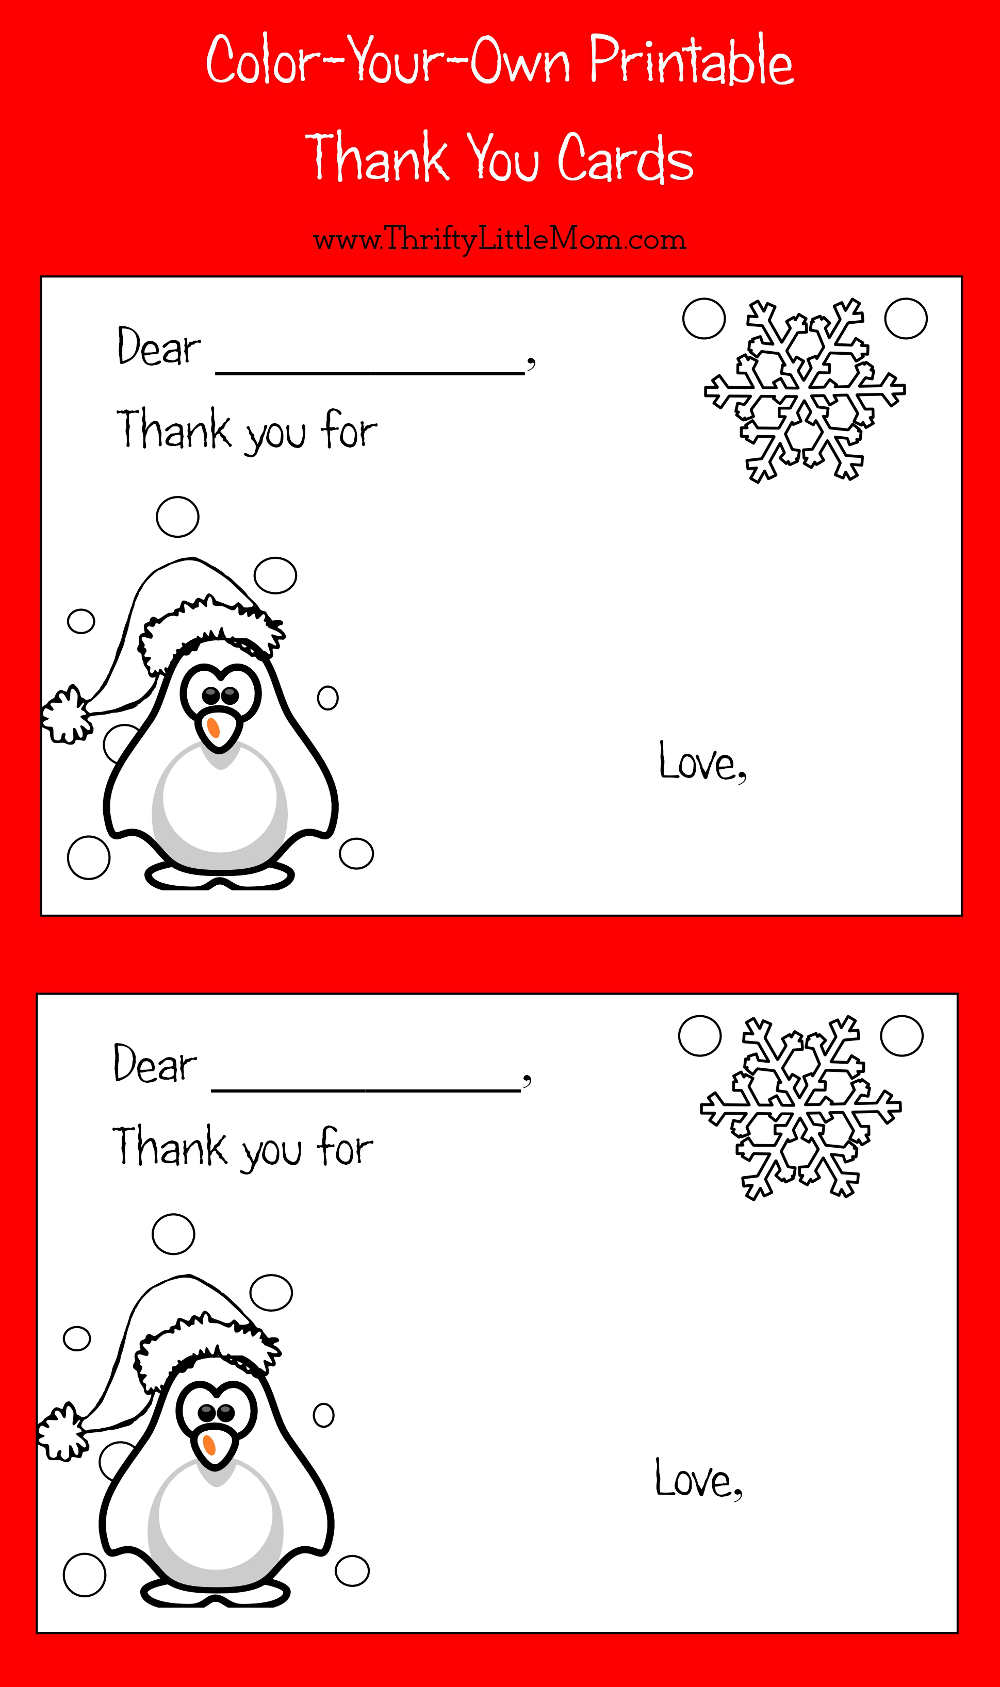 Color-Your-Own Printable Thank You Cards for Kids »